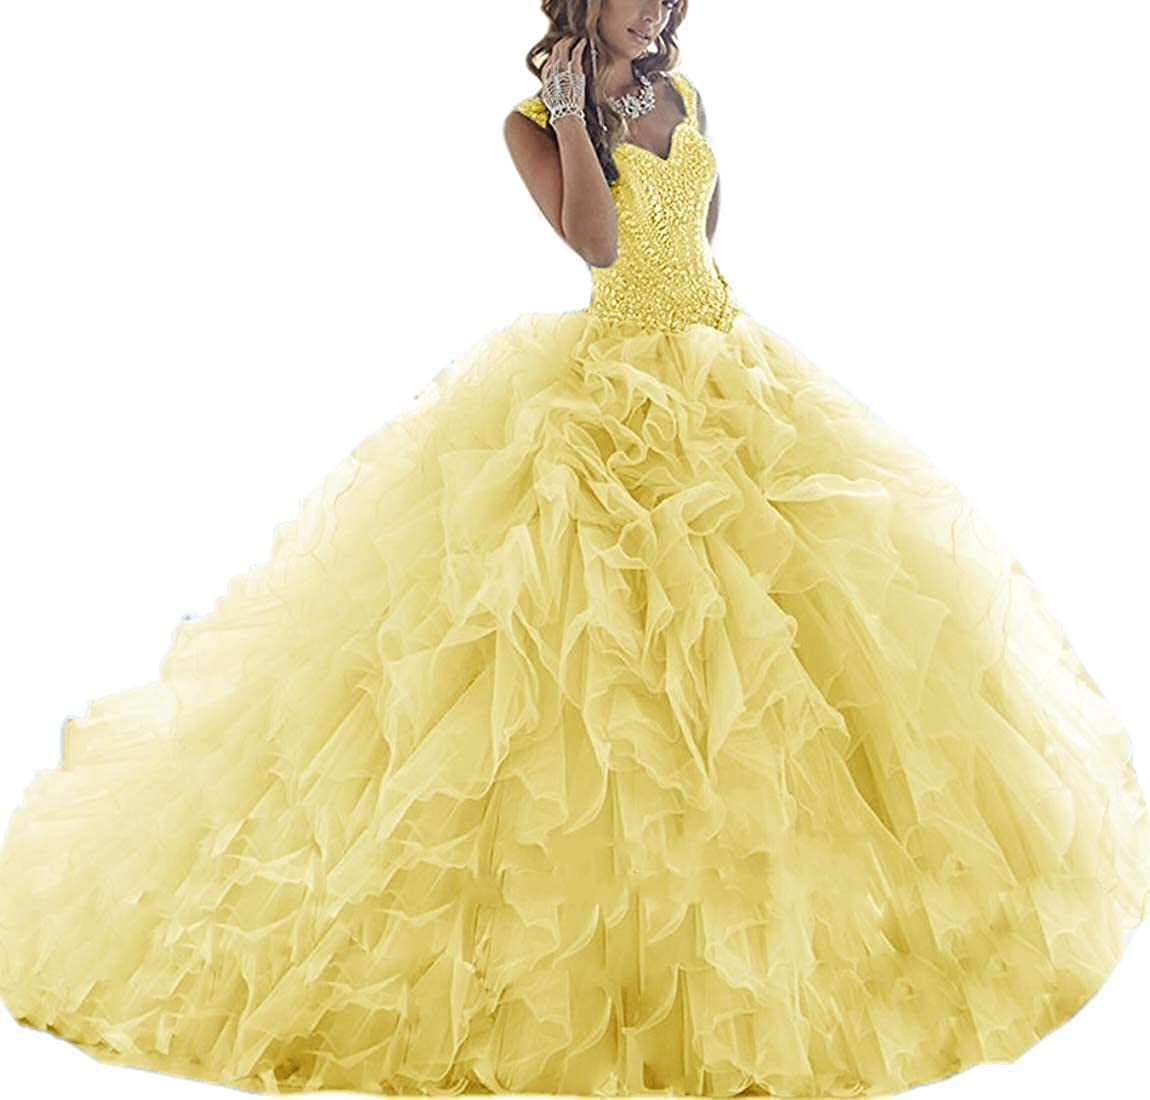 Yellow ASBridal Quinceanera Dresses Long Prom Party Dress Sweet 16 Crystals Beads Formal Ball Gowns Orangza